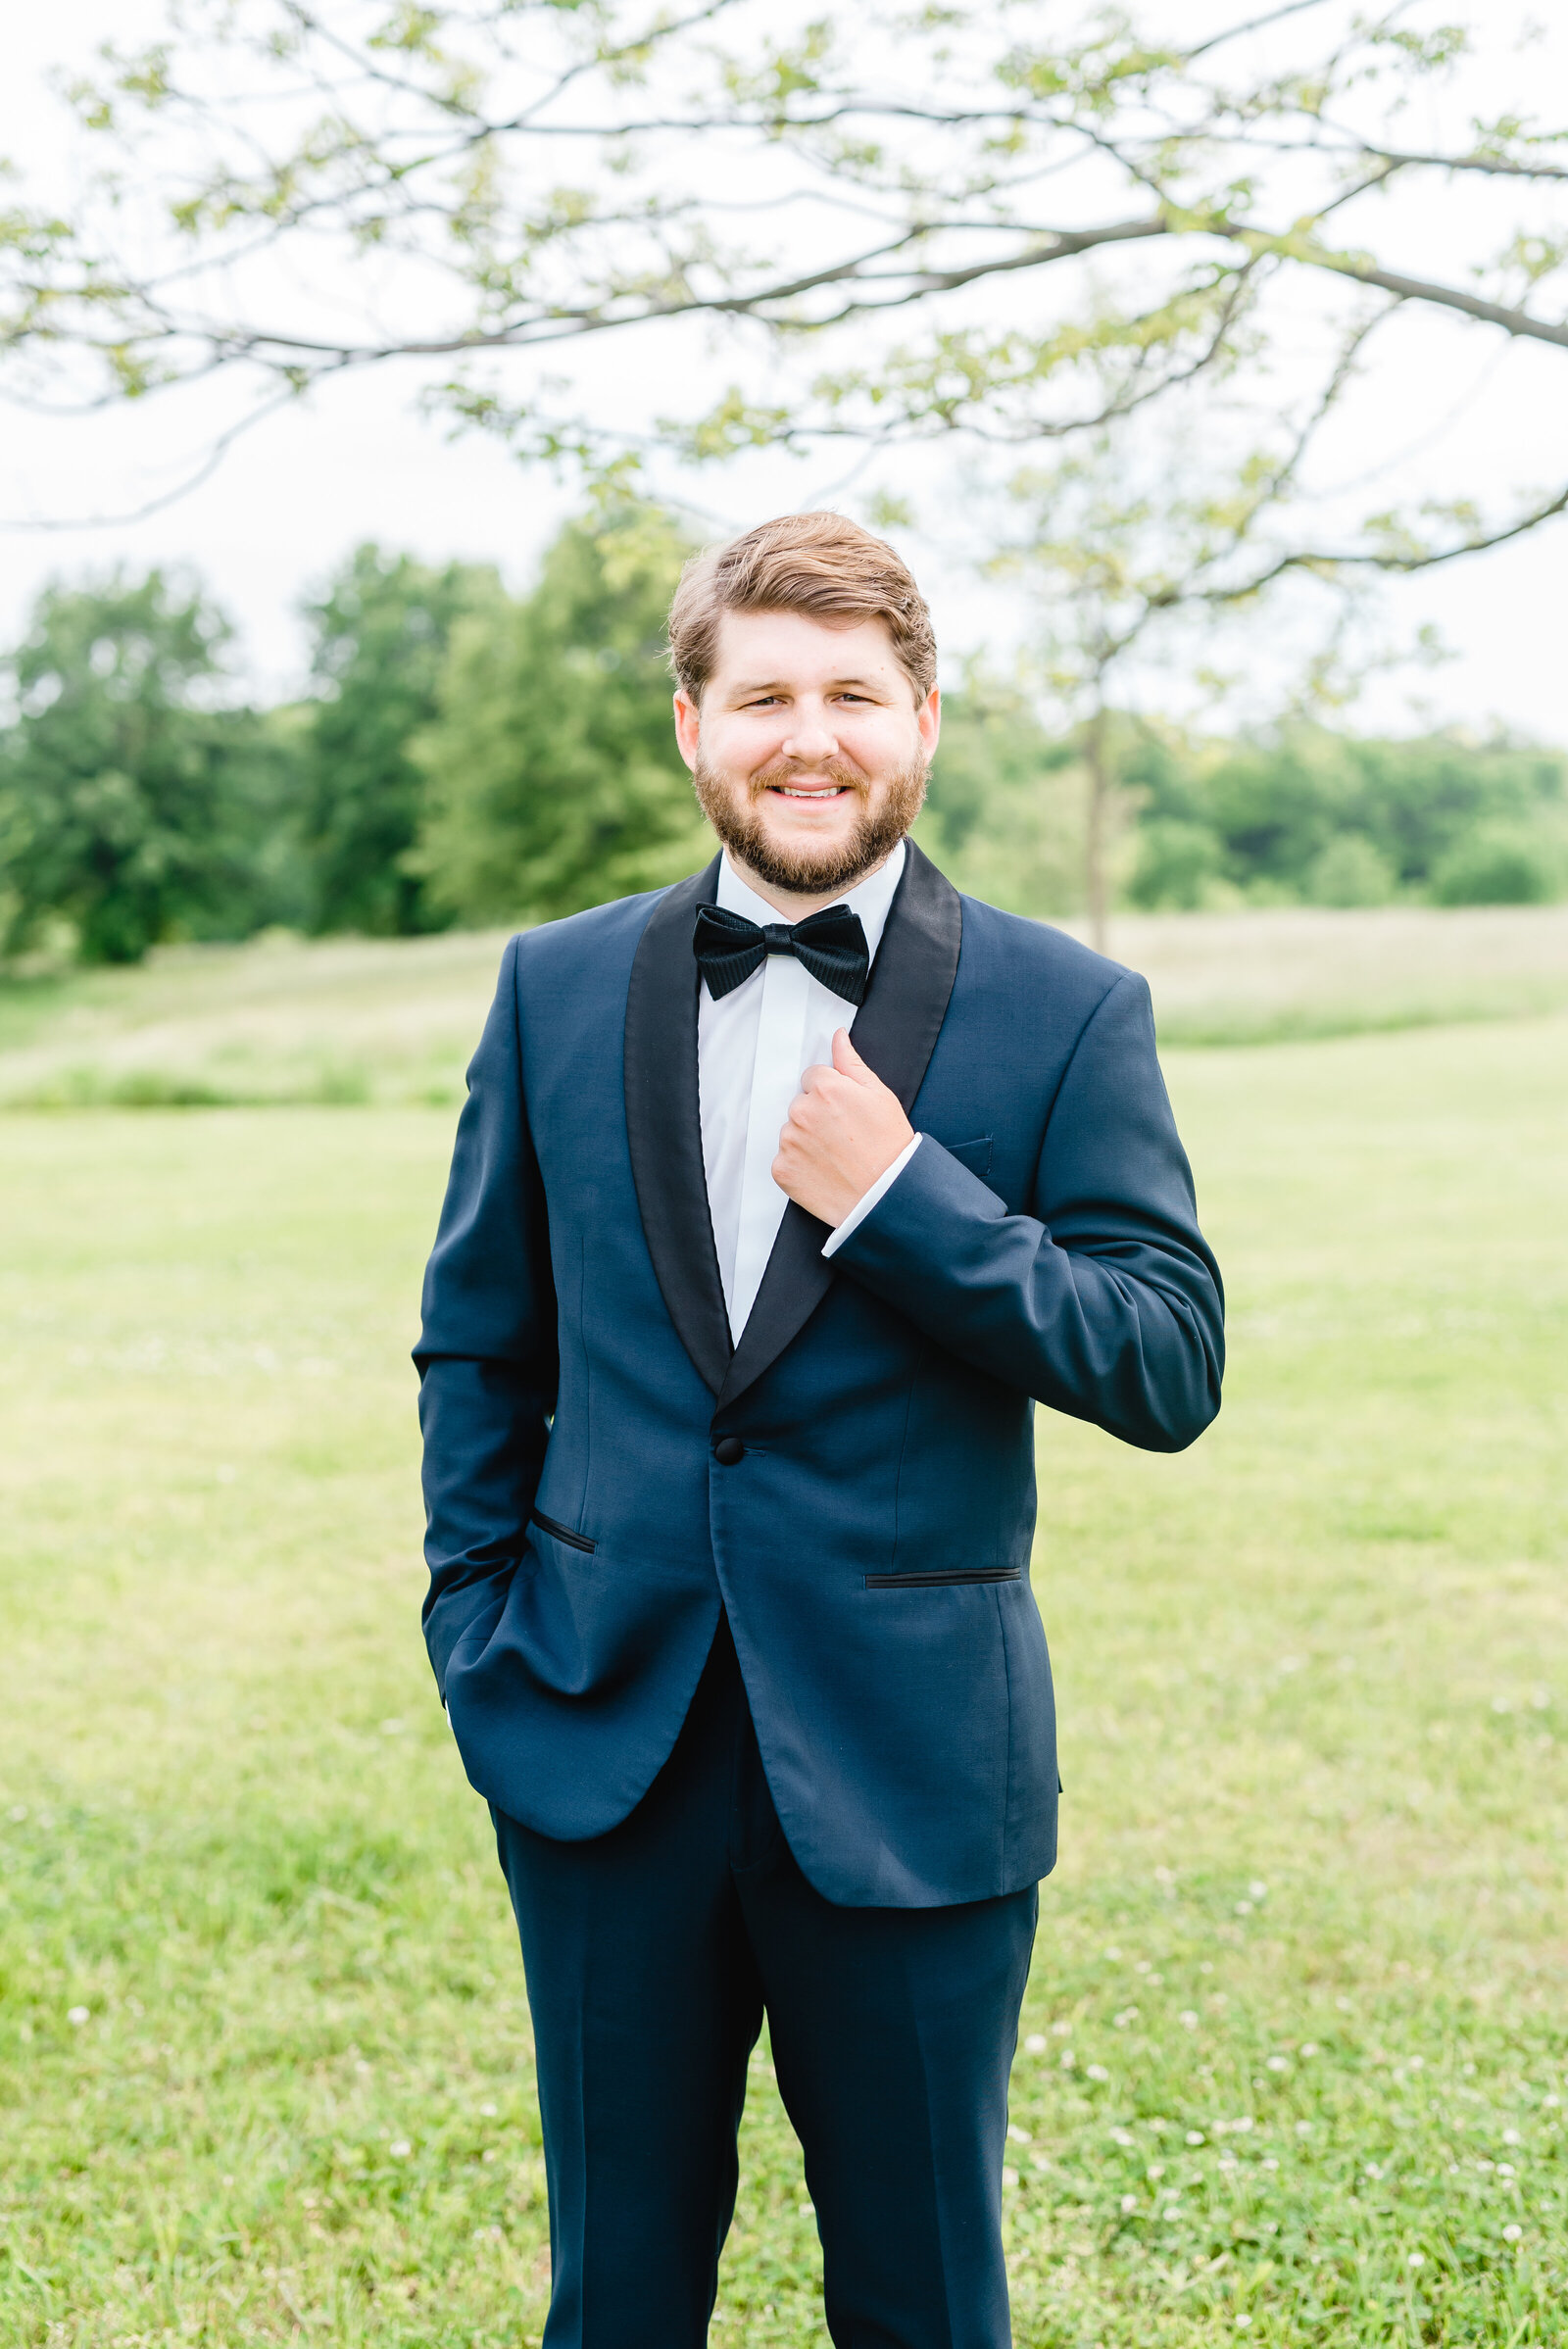 ChoinkaWeddingBrideandGroomPortraits-14